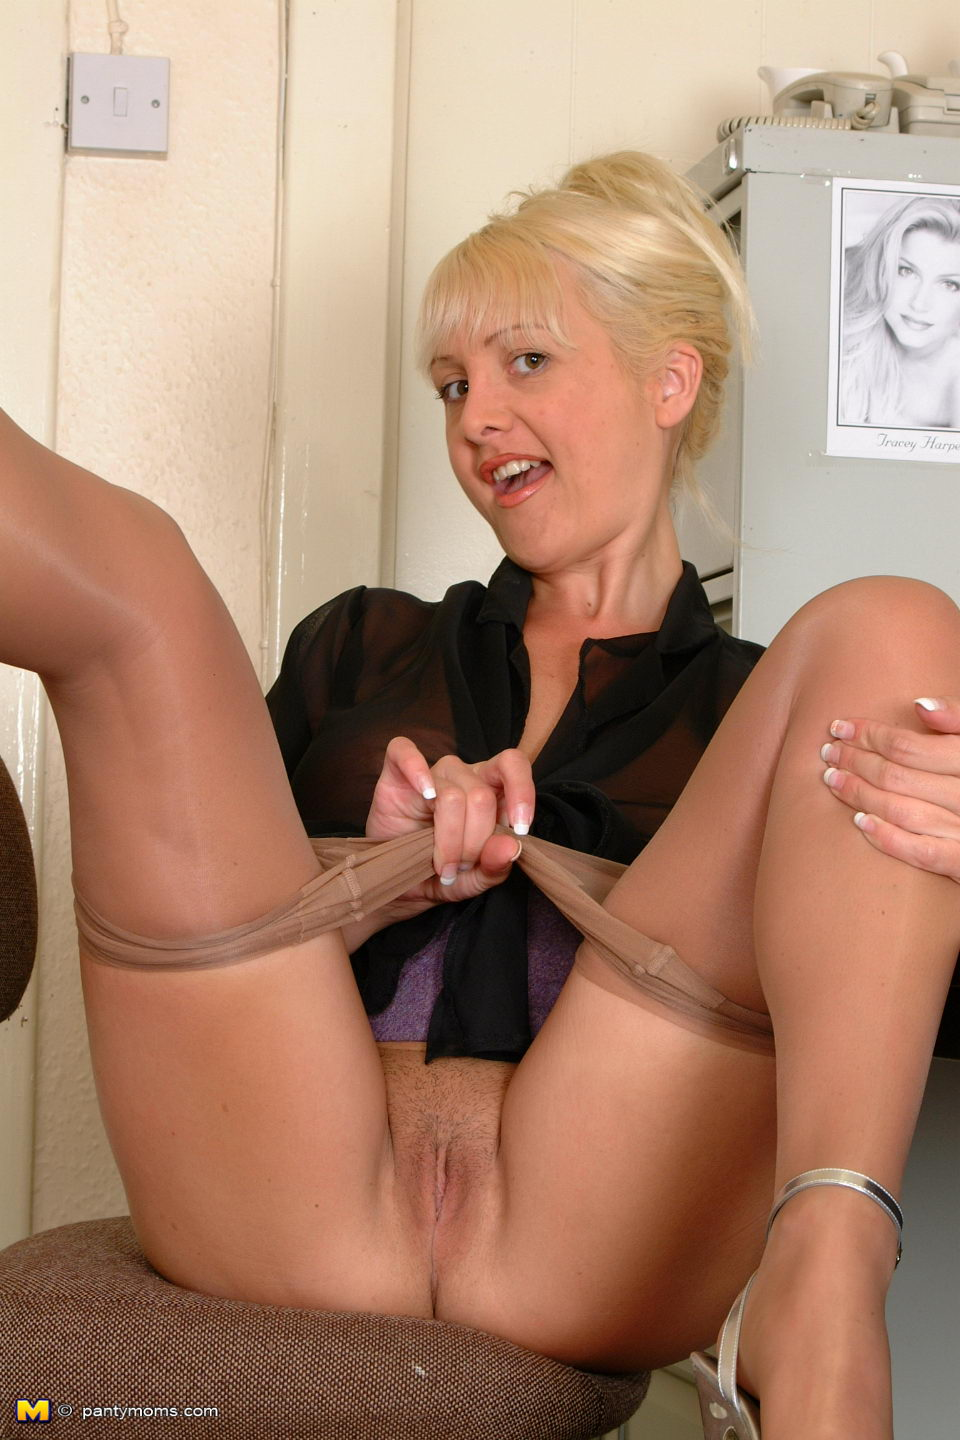 Mature erotic nylons right! seems